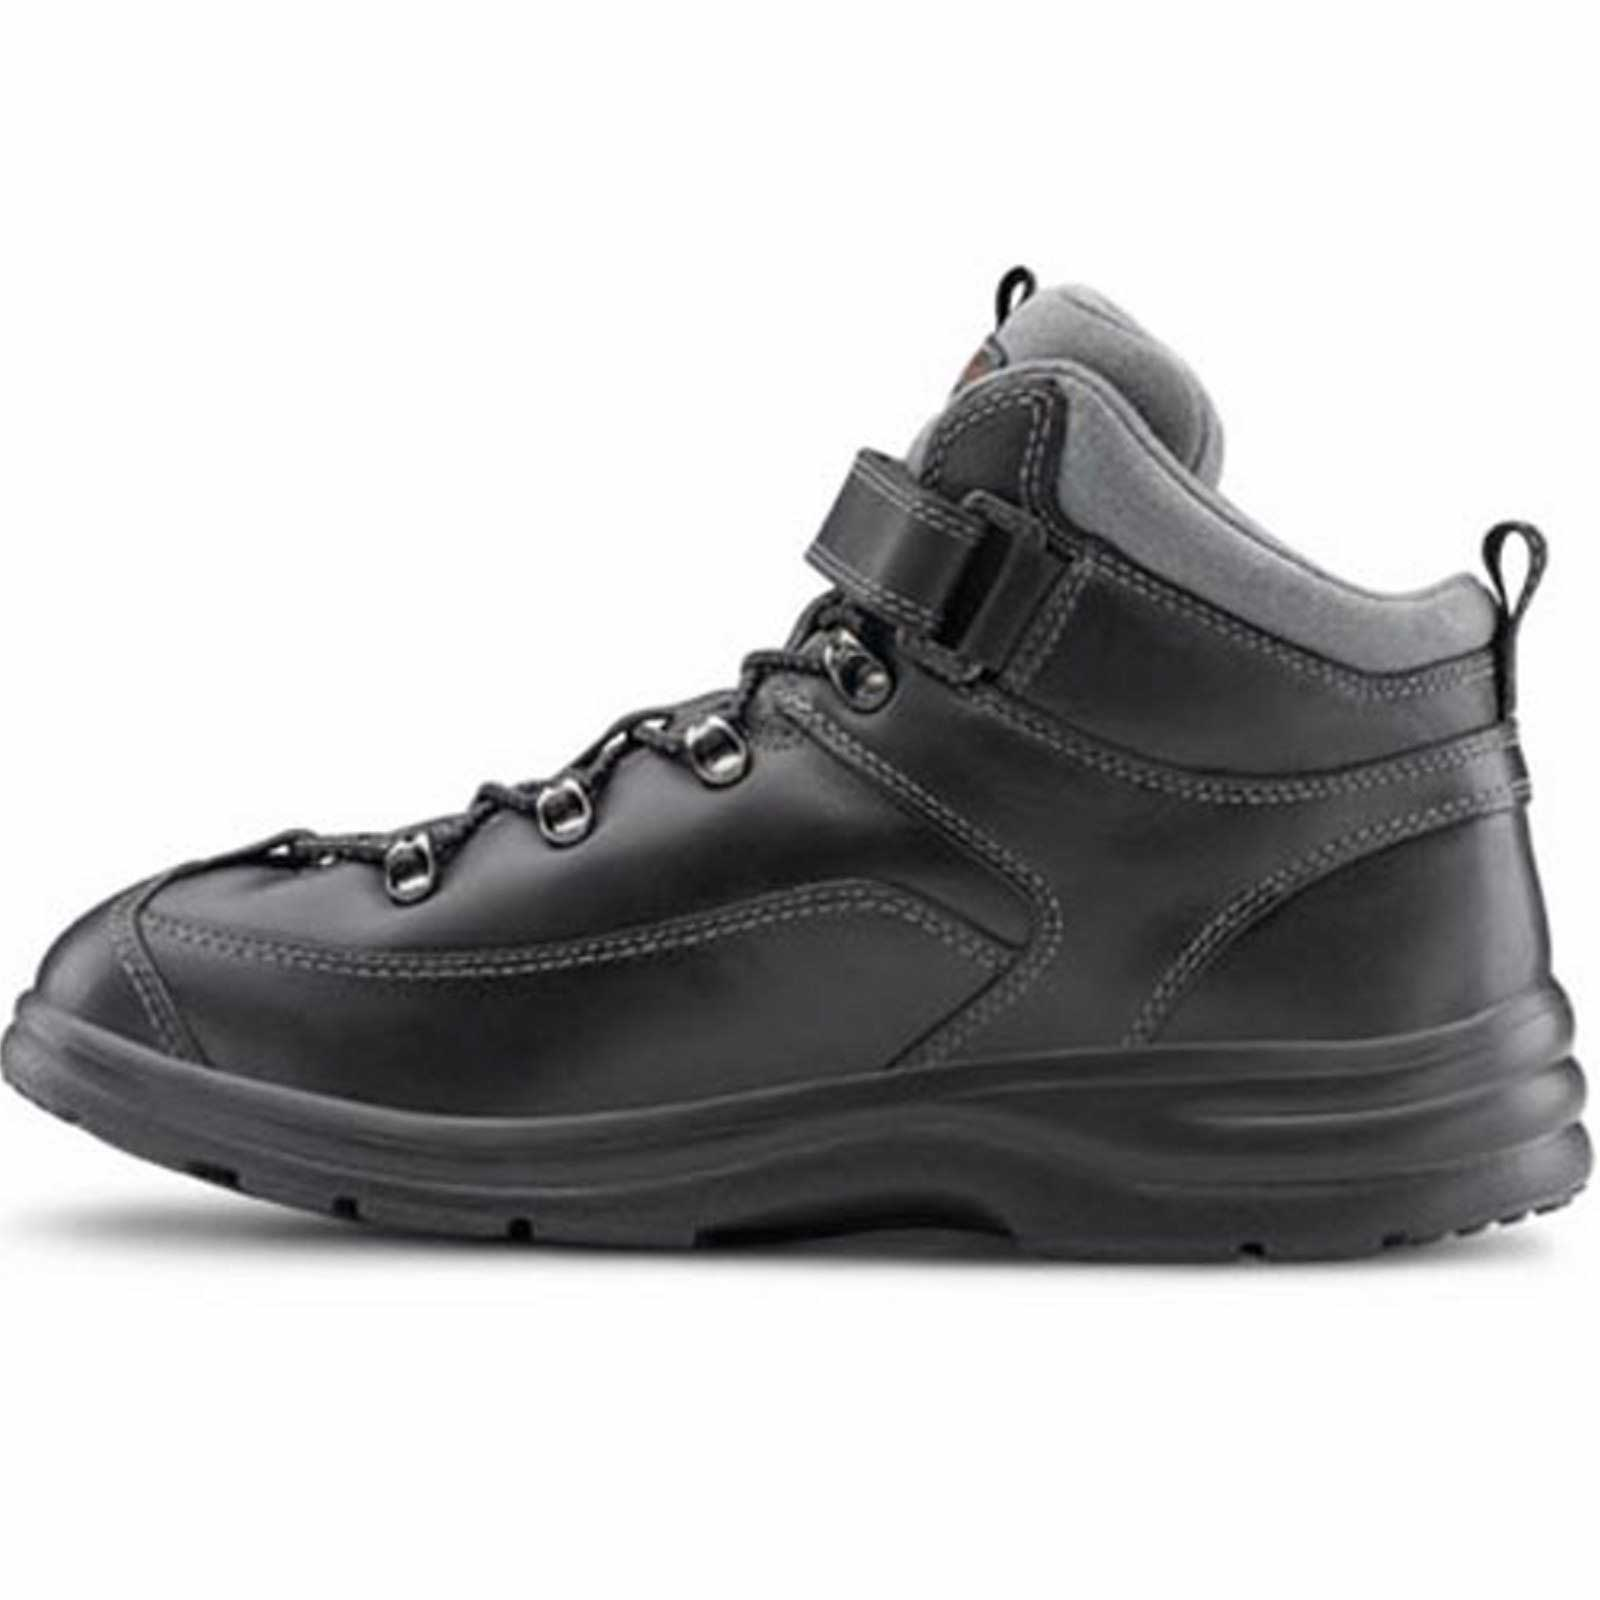 women trekking bootslowa boot w eu boots phoenix bootsunbeatable military shoes footwear turquoise hiking waterproof comfortable breathable sports gtx p cheap lowa us outdoor offers womens anthracite uk comforter mid s